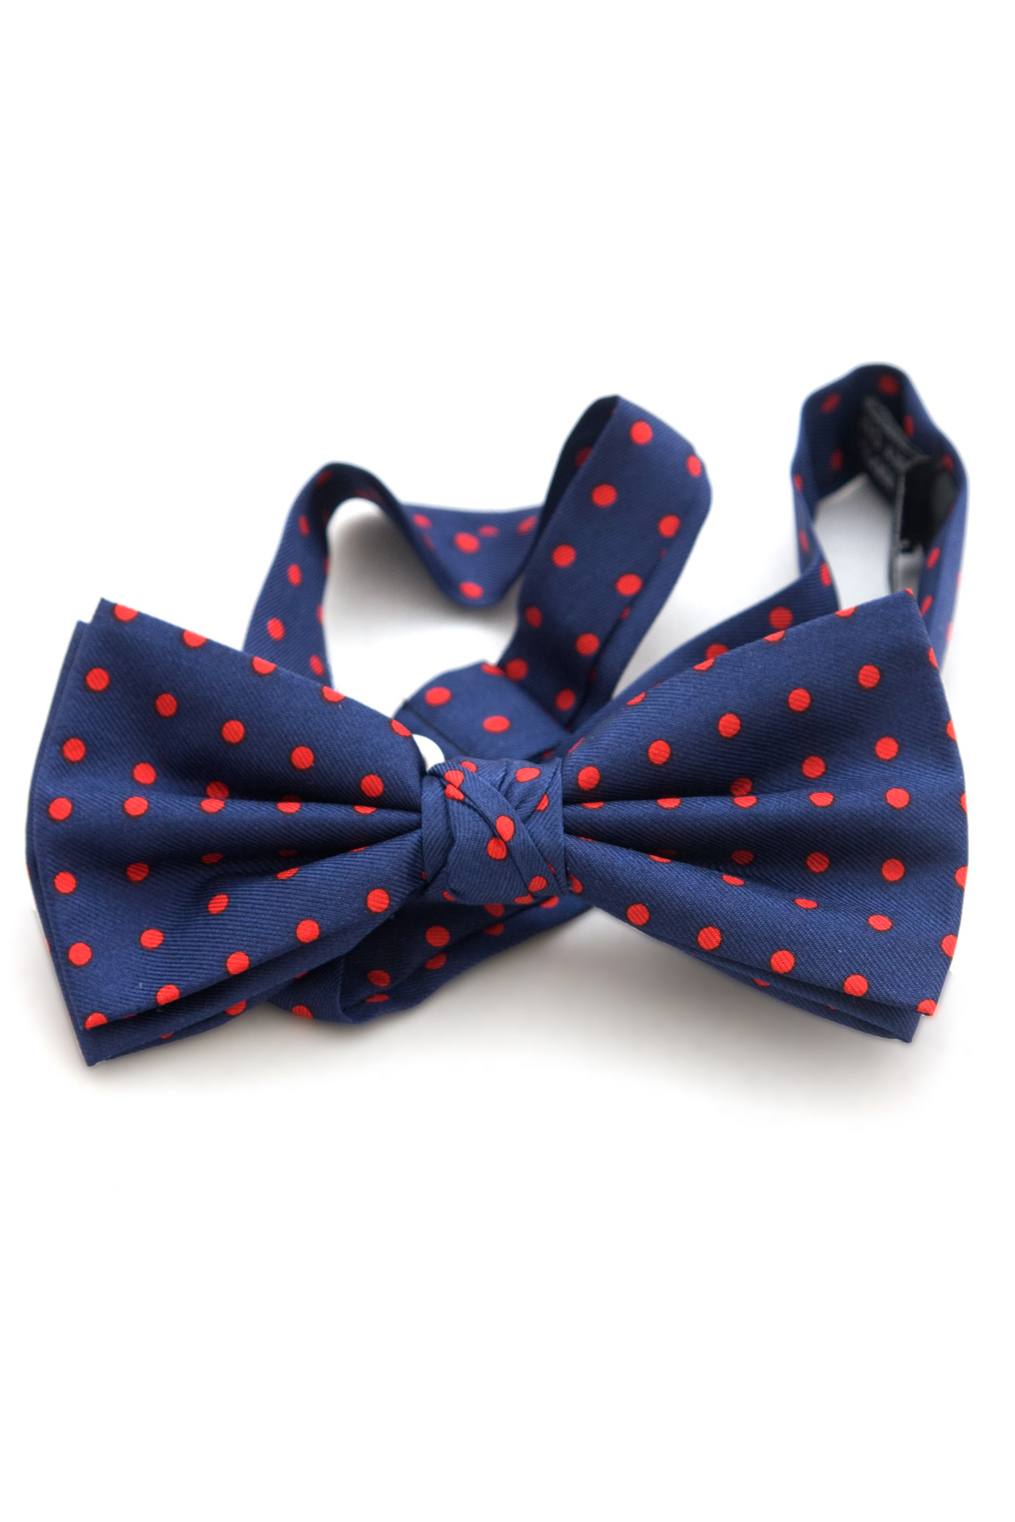 Lloyd Attree & Smith Silk Bow Tie